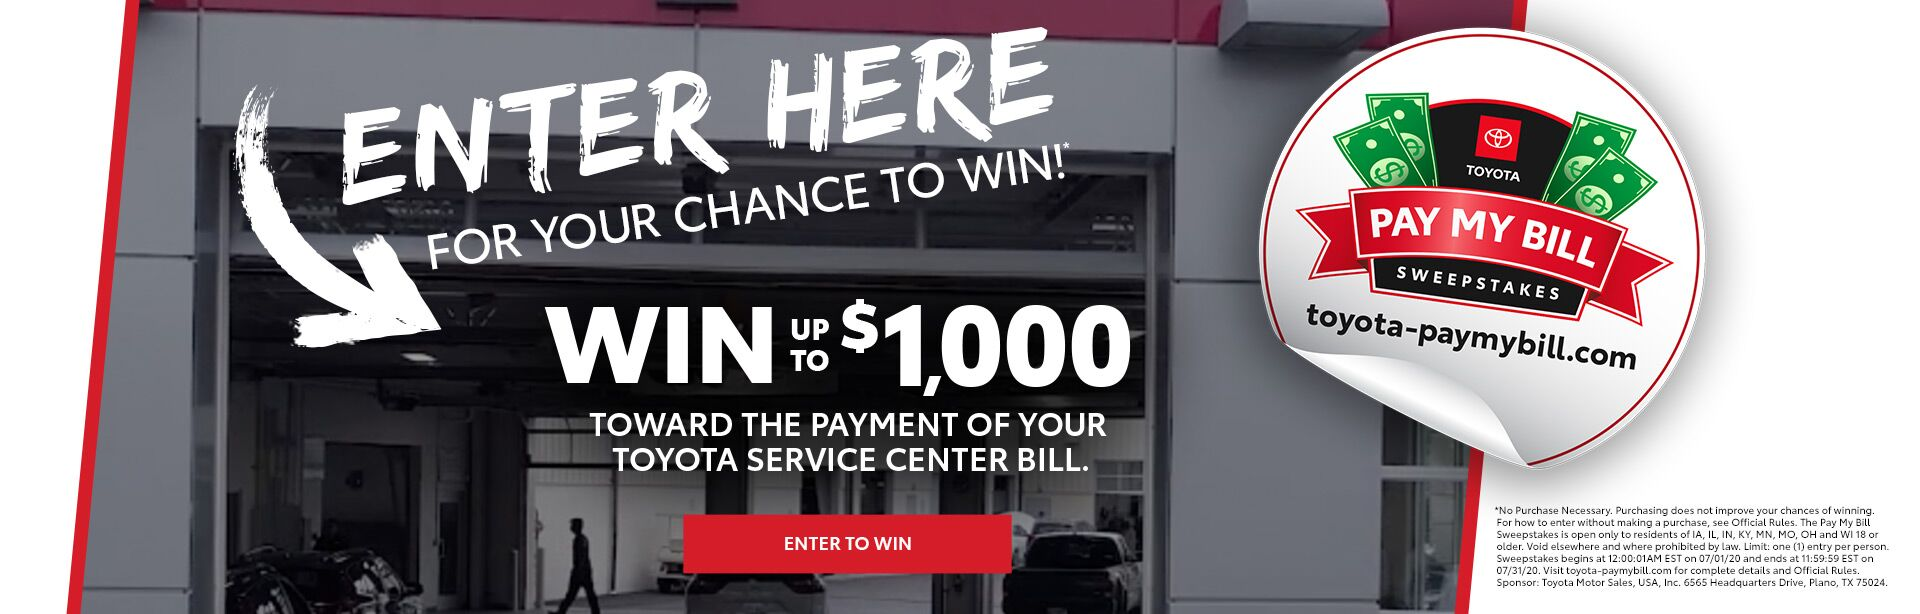 Burnsville Toyota Pay My Bill Sweepstakes